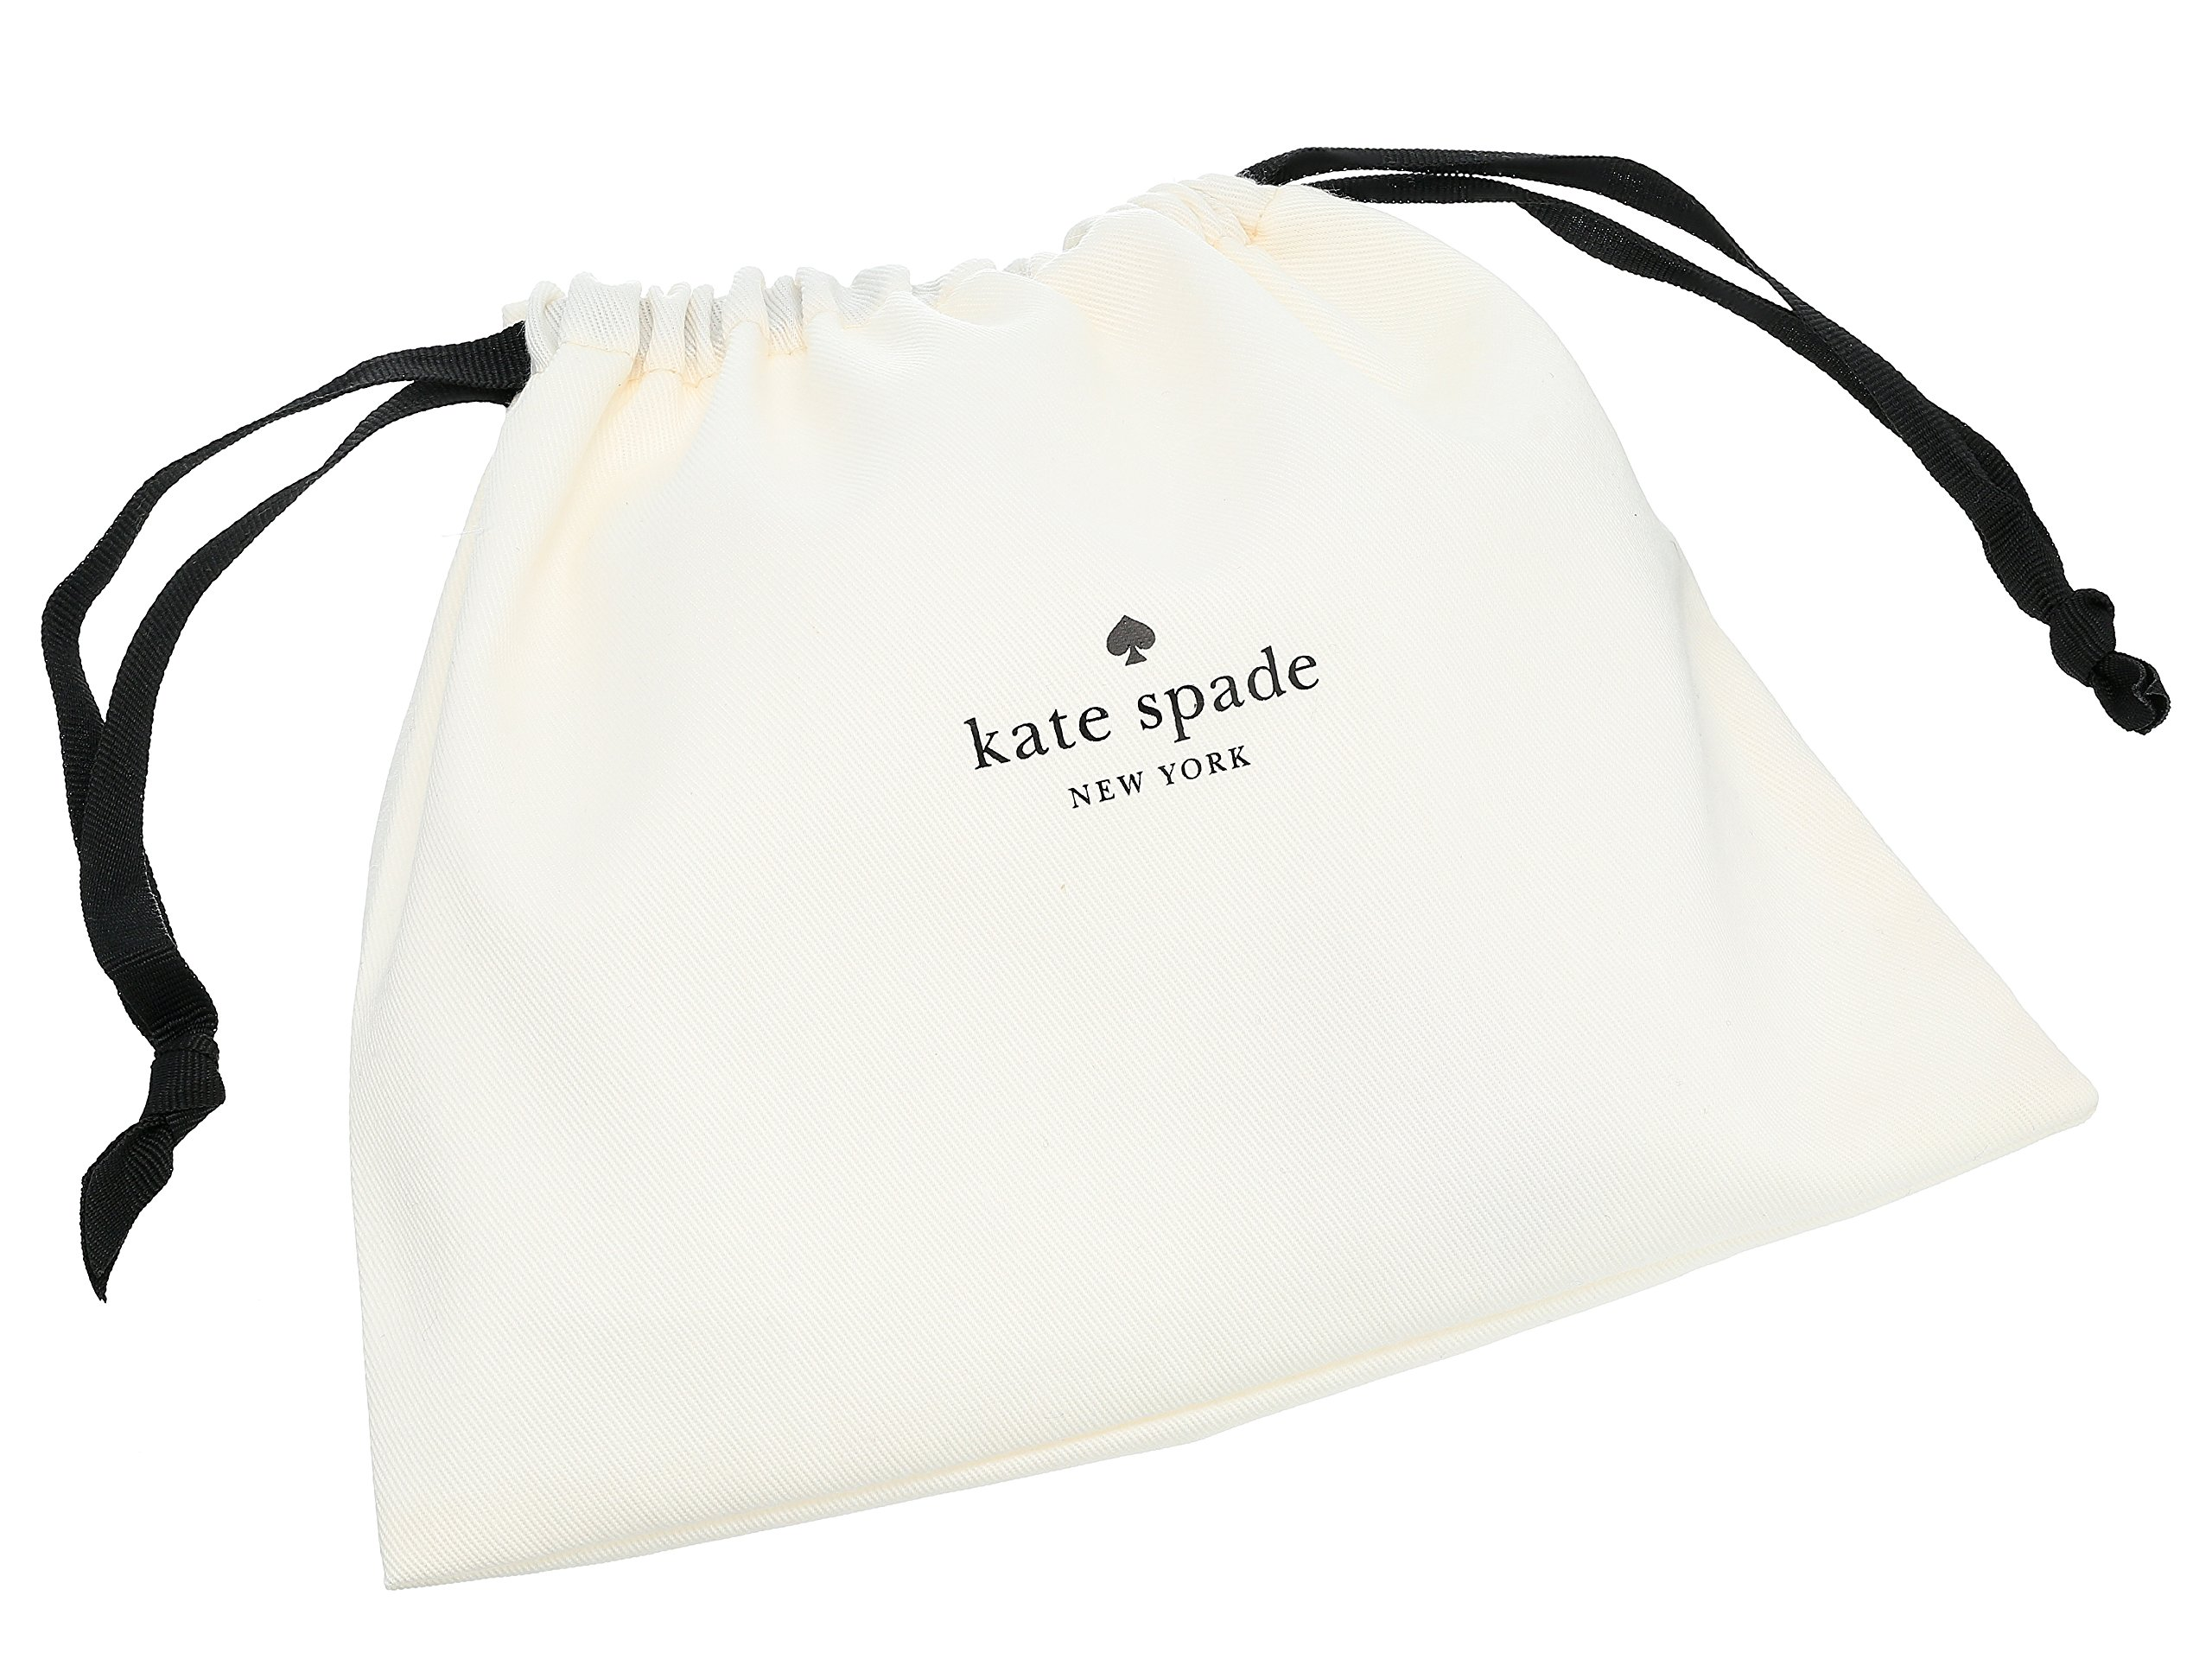 Kate Spade New York M Choker Necklace, 14'' + 2'' Extender by Kate Spade New York (Image #3)